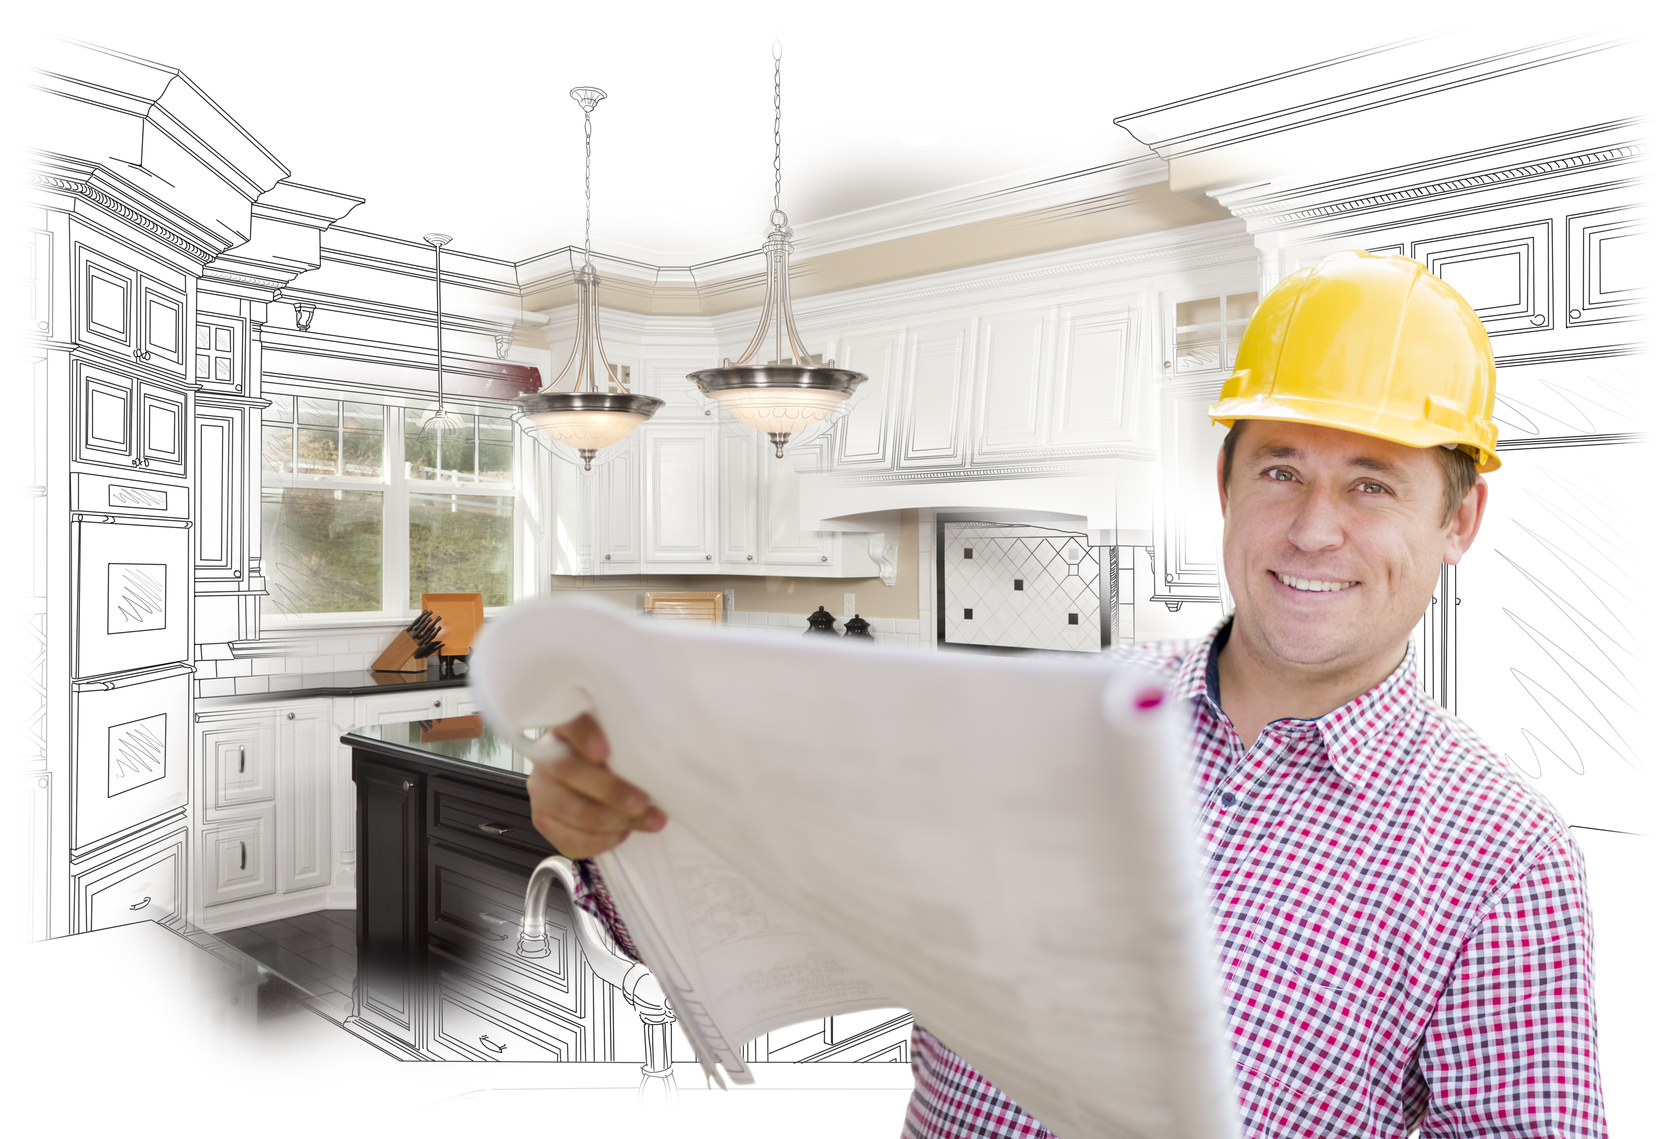 How to hire reliable kitchen remodeling contractors for Kitchen remodeling companies